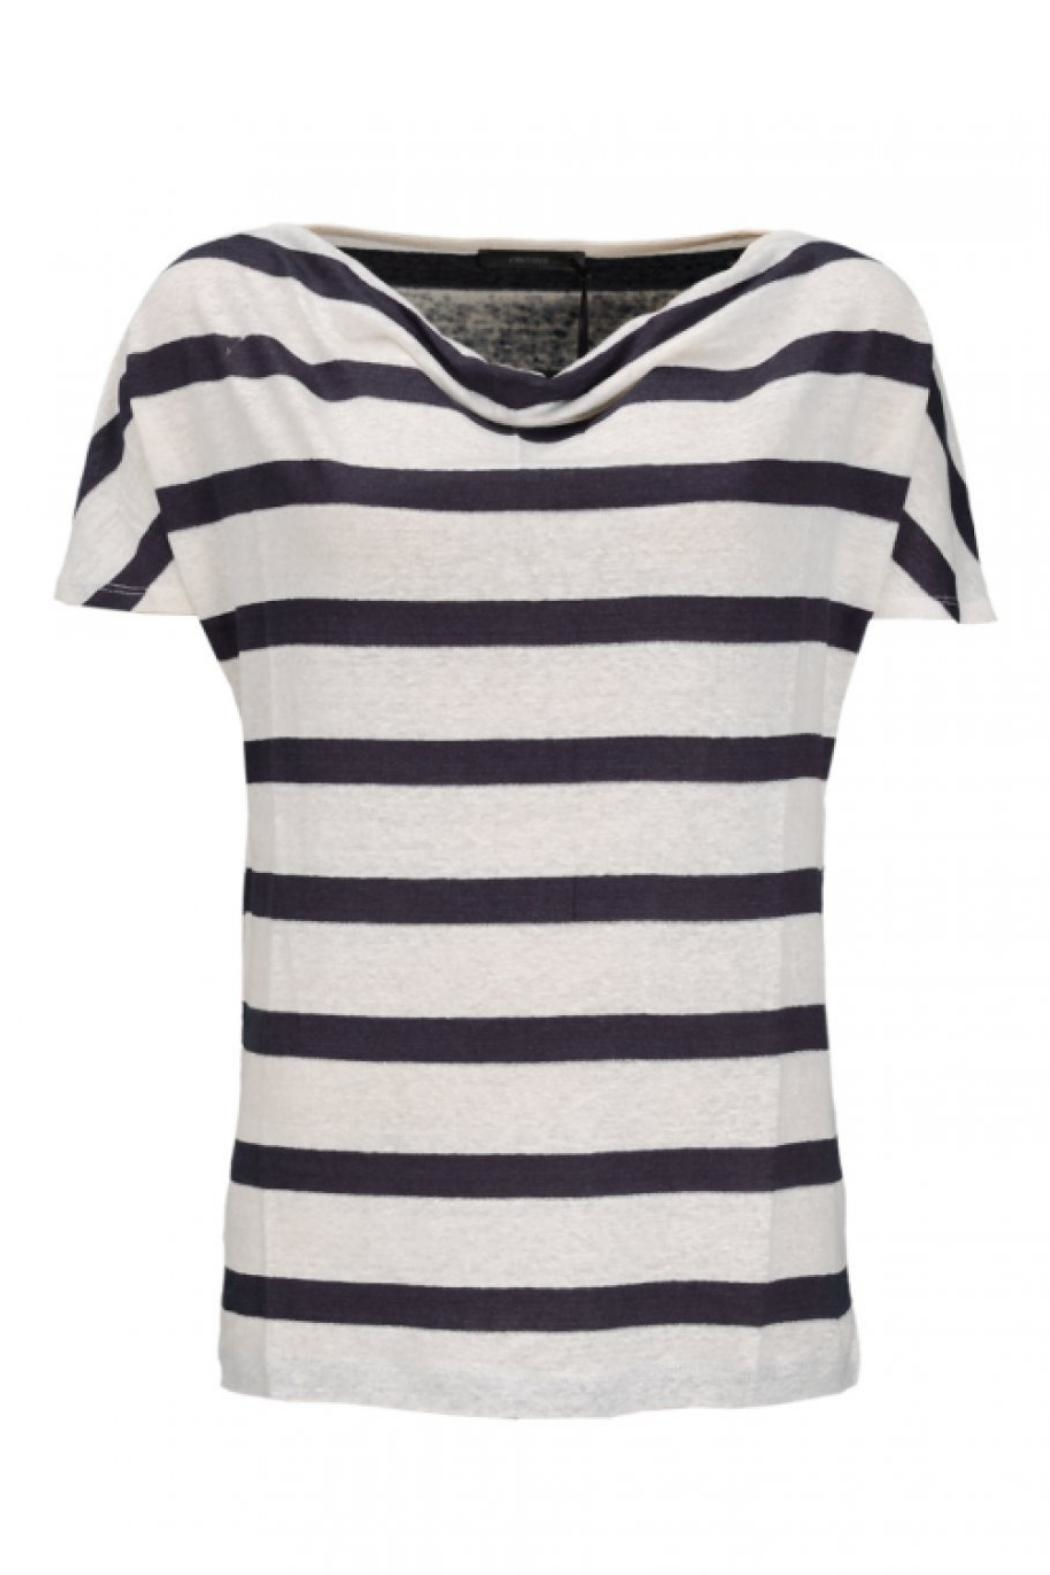 Emotions Summery Striped T-Shirt - Main Image